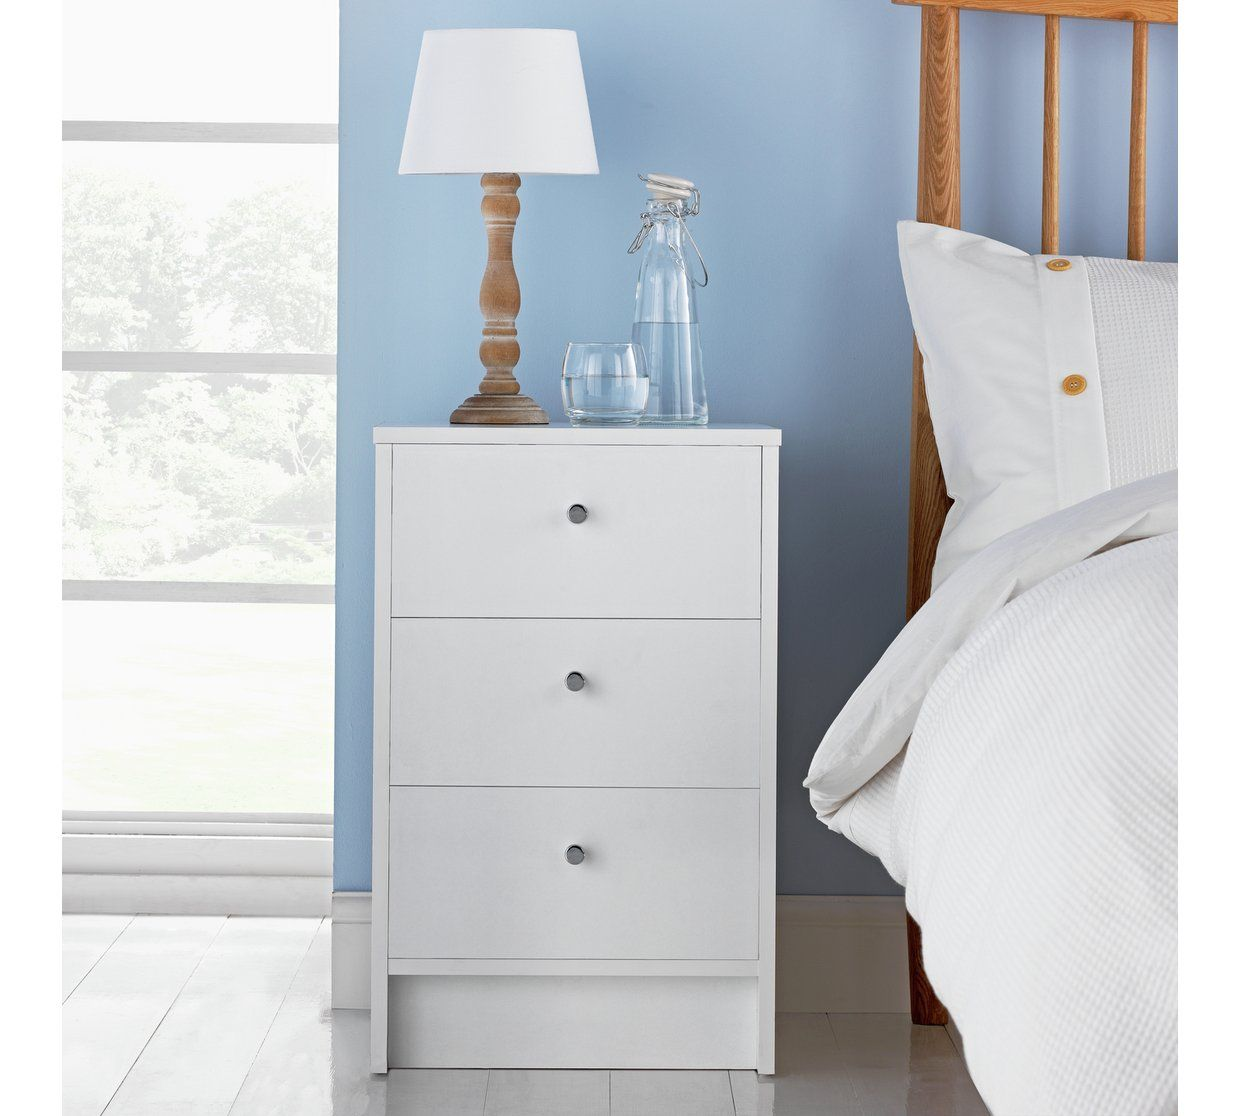 Buy Argos Home Malibu 3 Drawer Bedside Table White Bedside Tables Argos White Bedside Table Argos Home White Bedside Cabinets